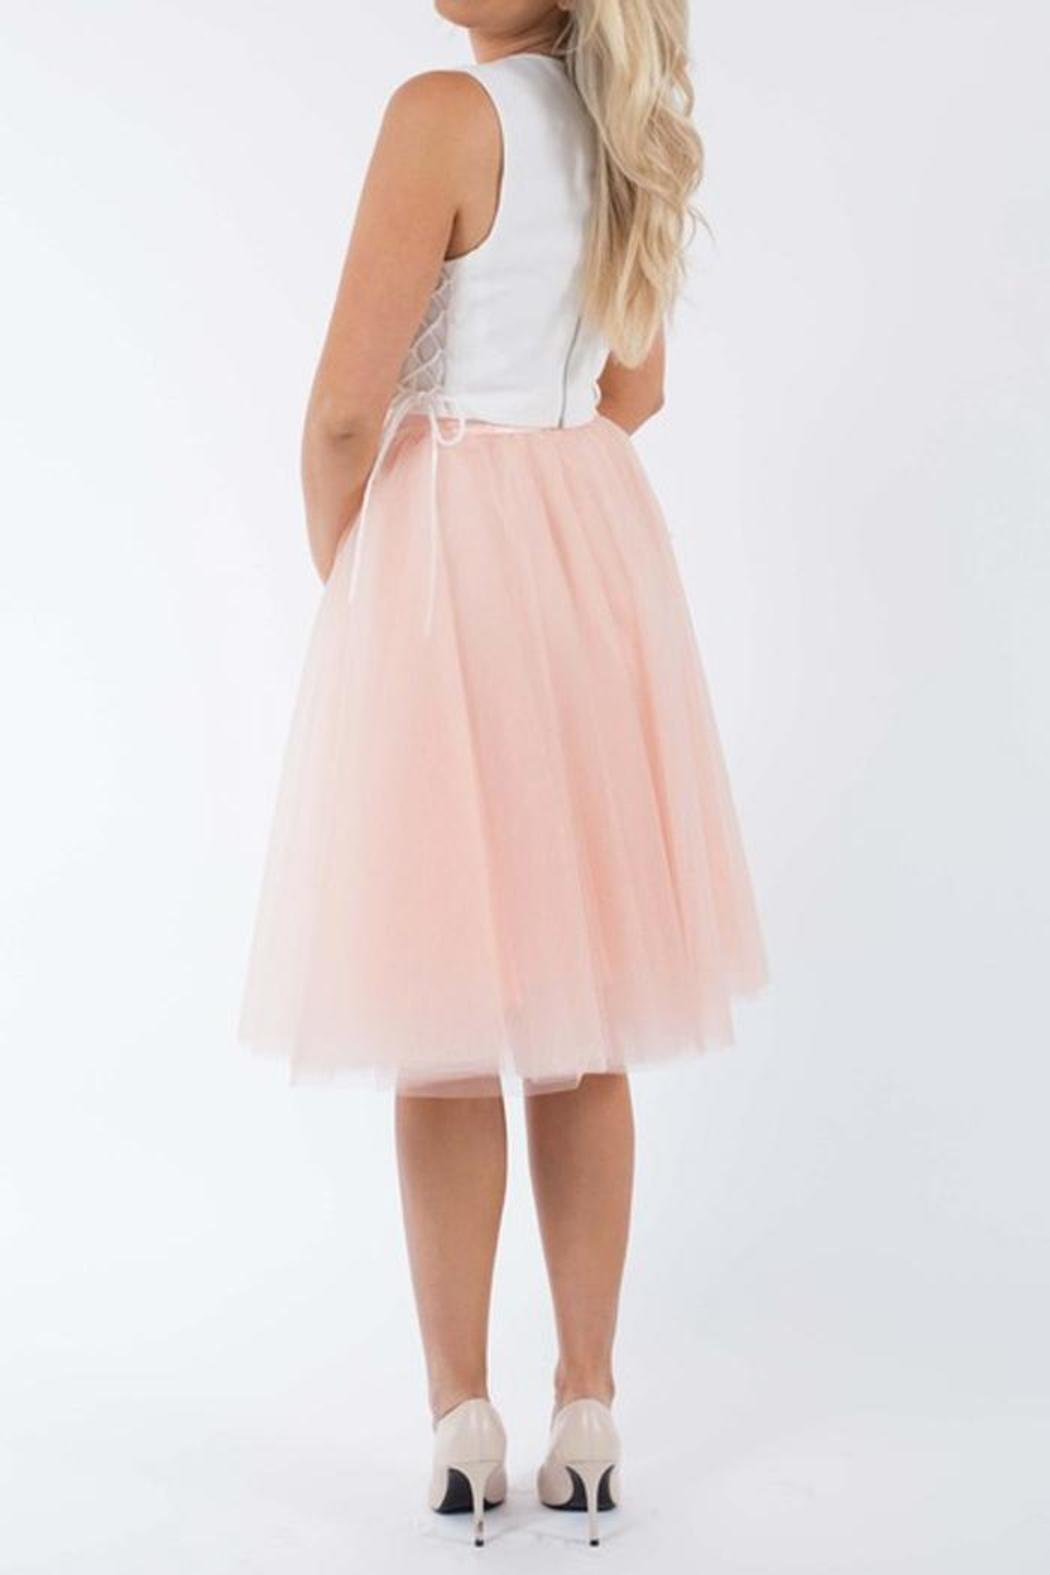 SNAZZY CHIC BOUTIQUE Blush Tulle Skirt - Front Full Image